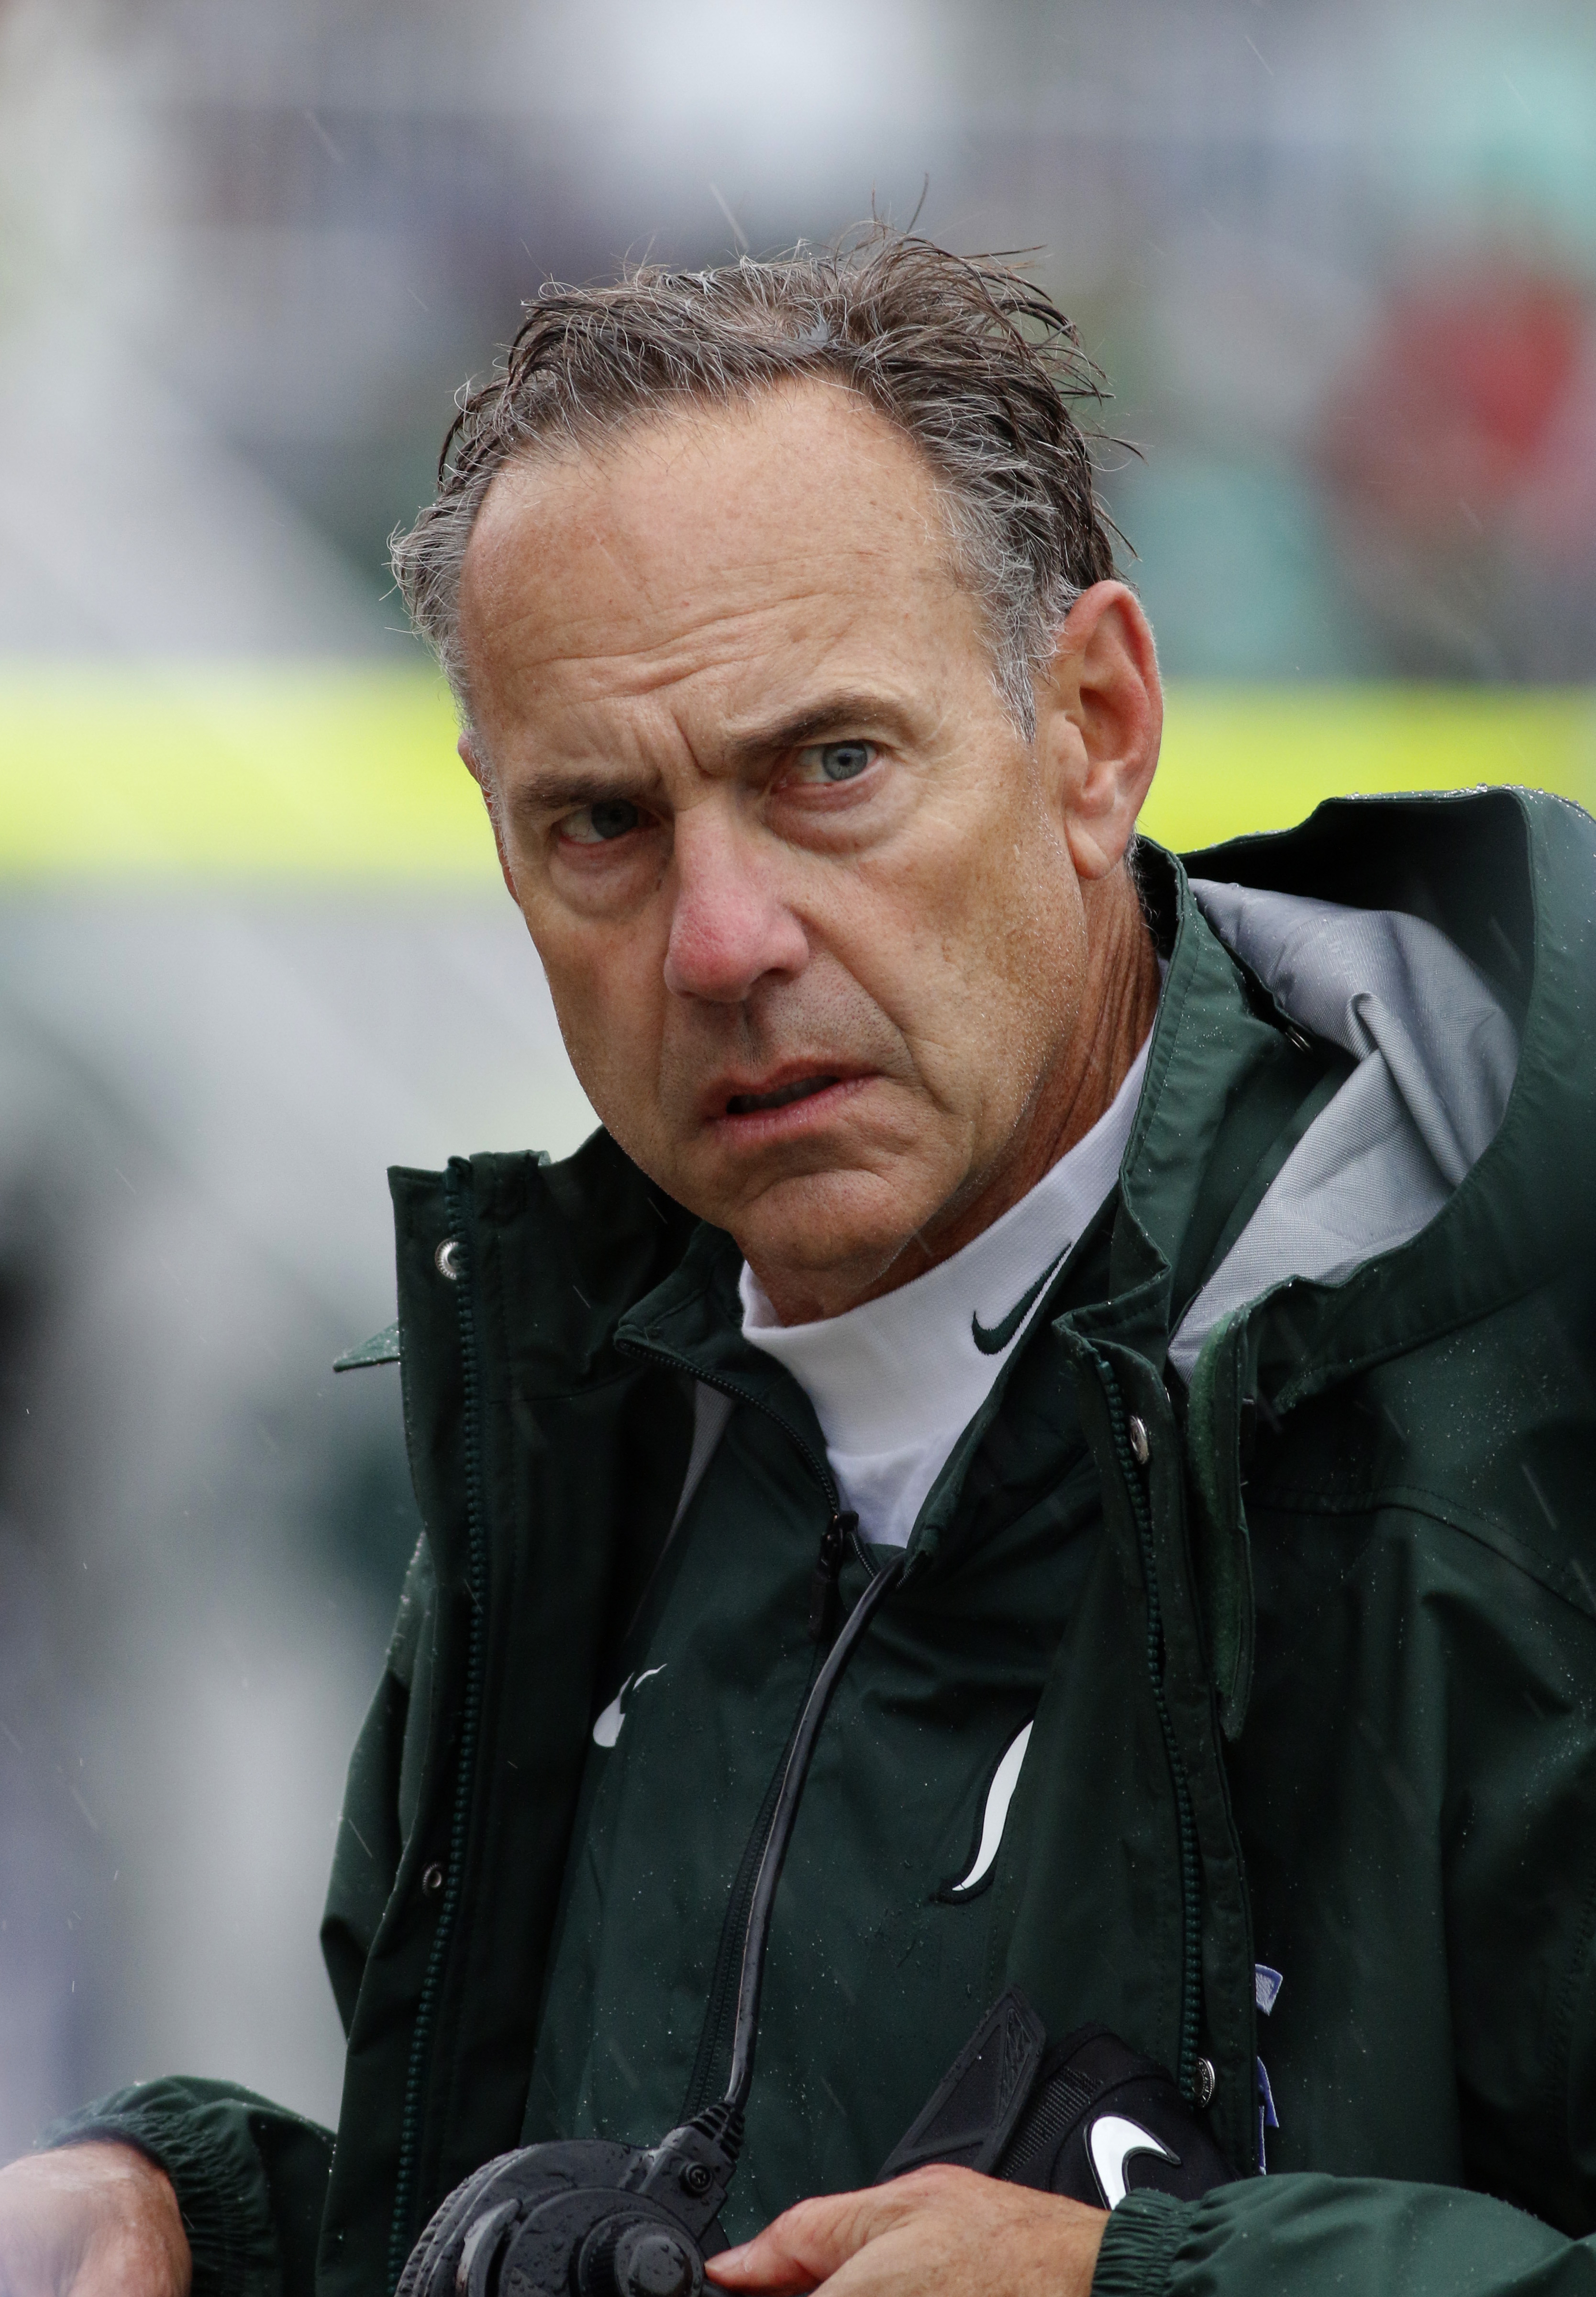 Michigan State coach Mark Dantonio loosk on from the sideline during the second quarter of an NCAA college football game against Purdue, Saturday, Oct. 3, 2015, in East Lansing, Mich. Michigan State won 24-21. (AP Photo/Al Goldis)